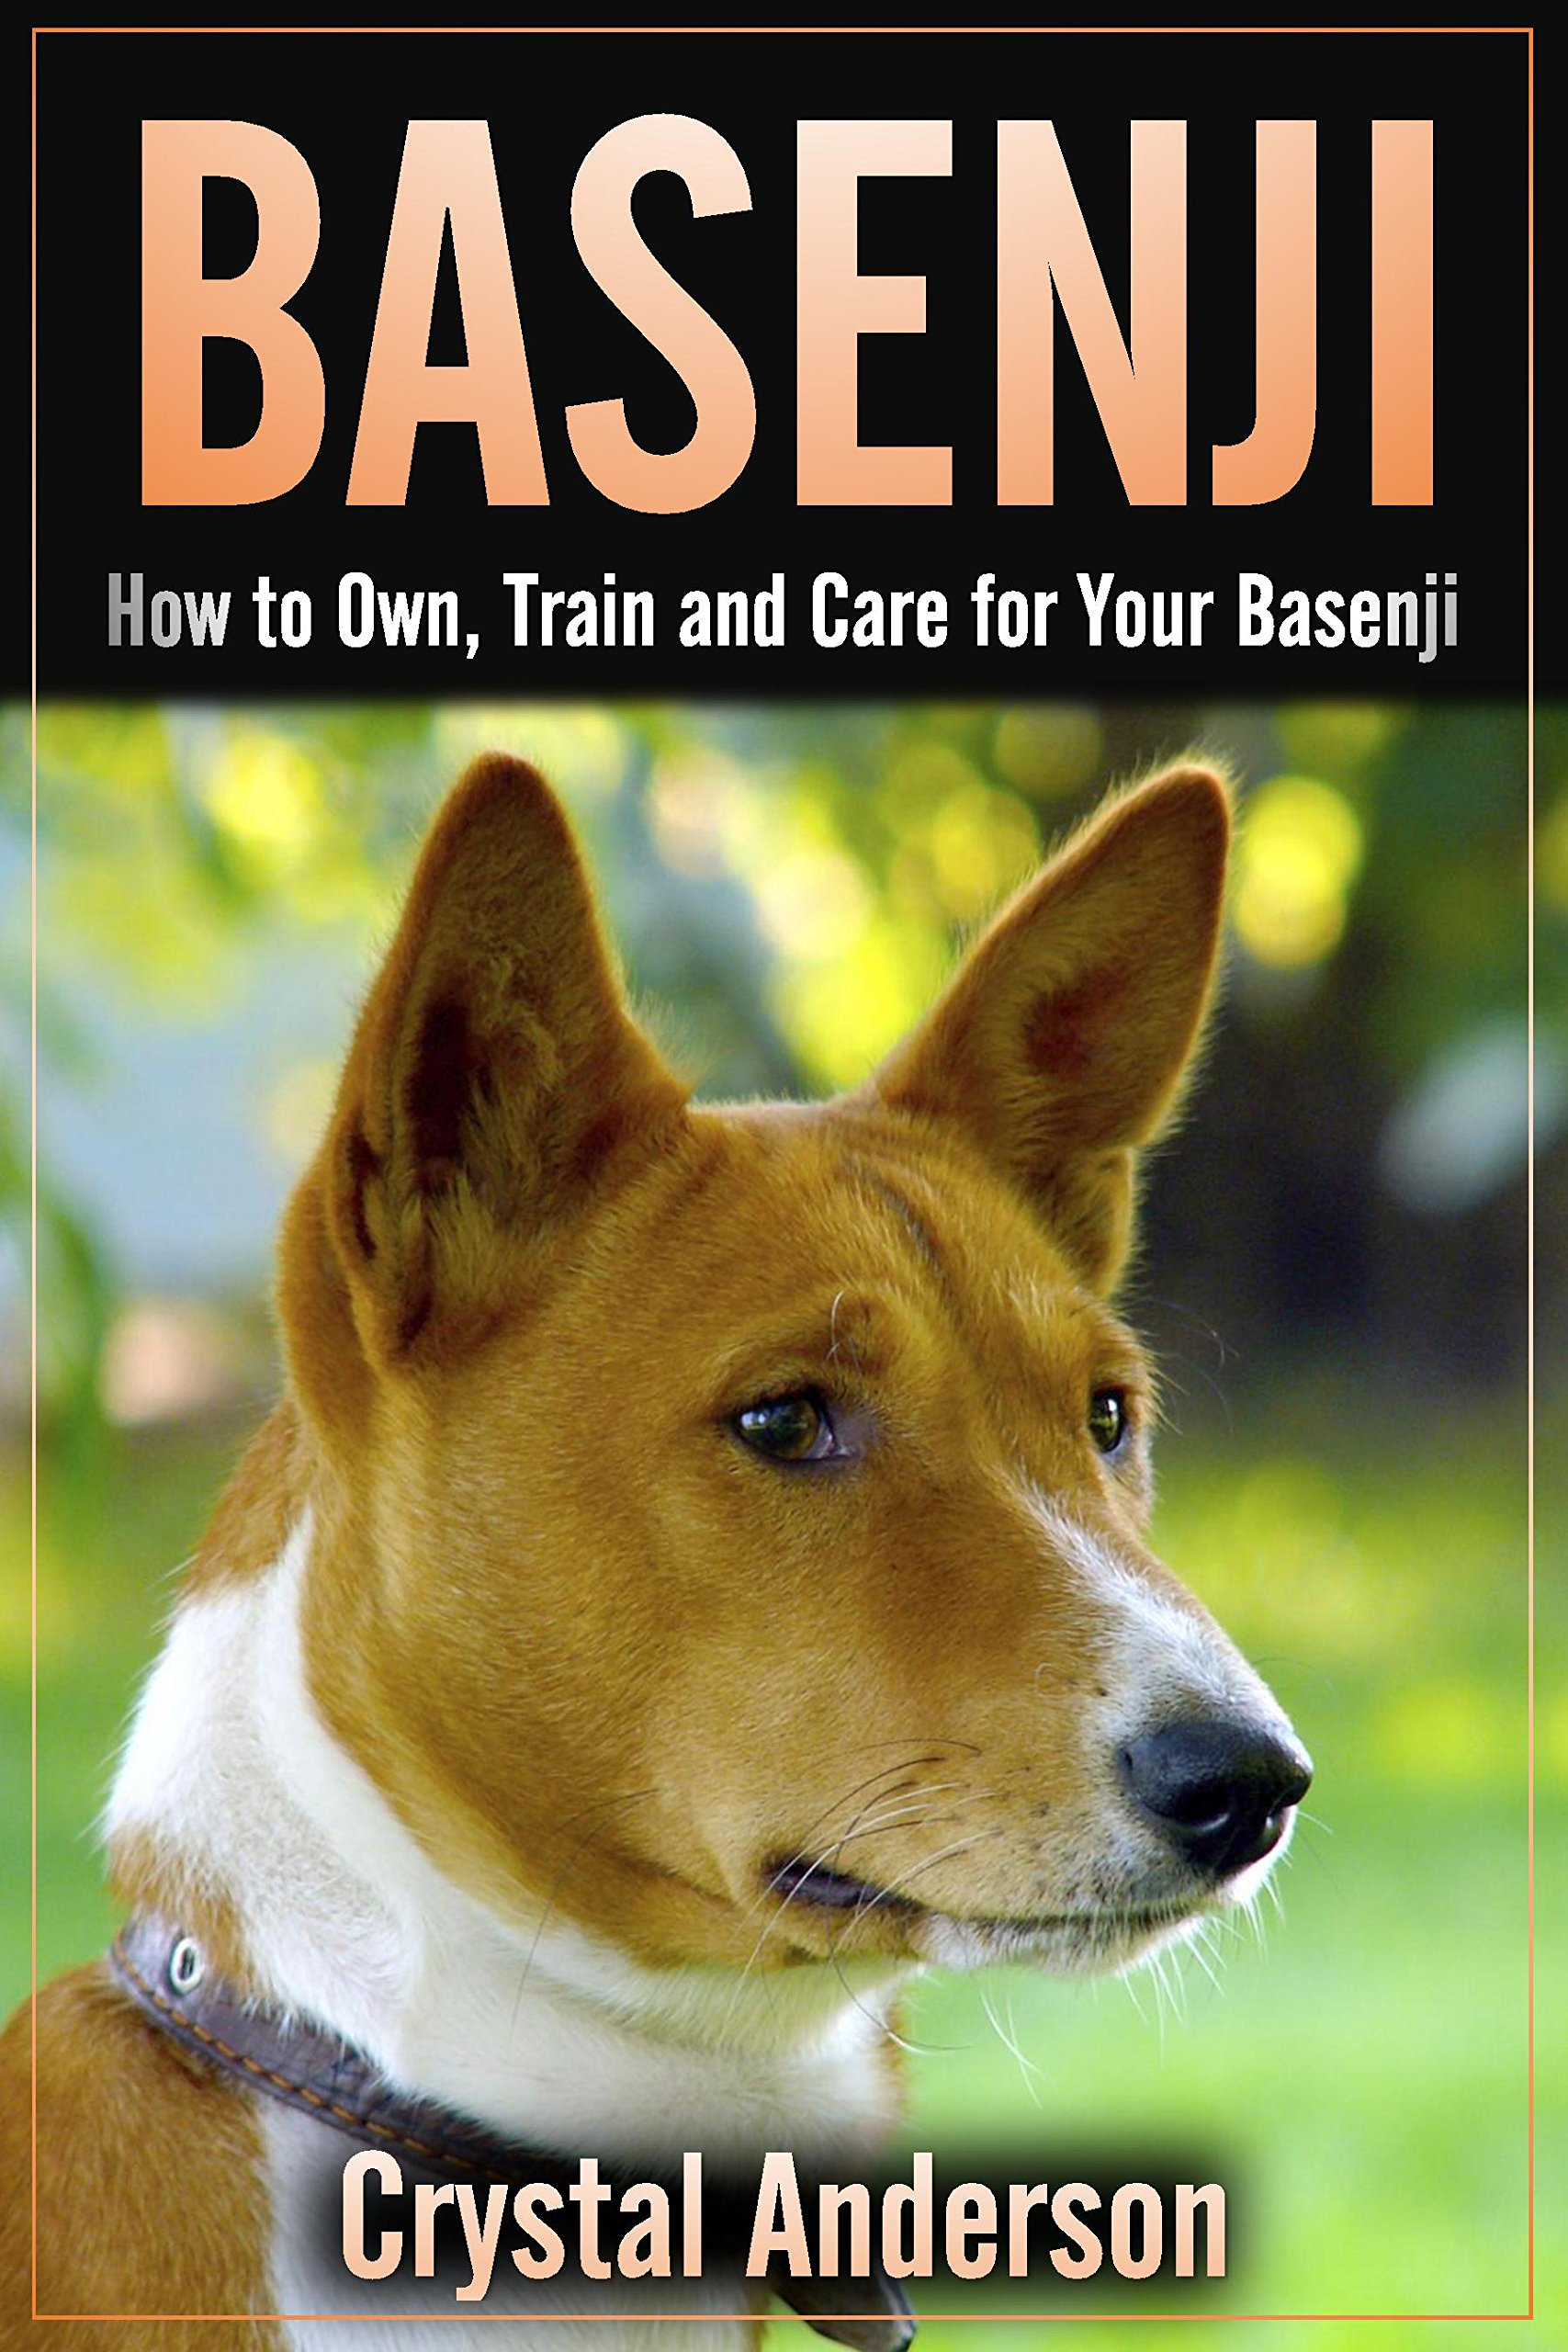 Basenji: How to Own, Train and Care for Your Basenji